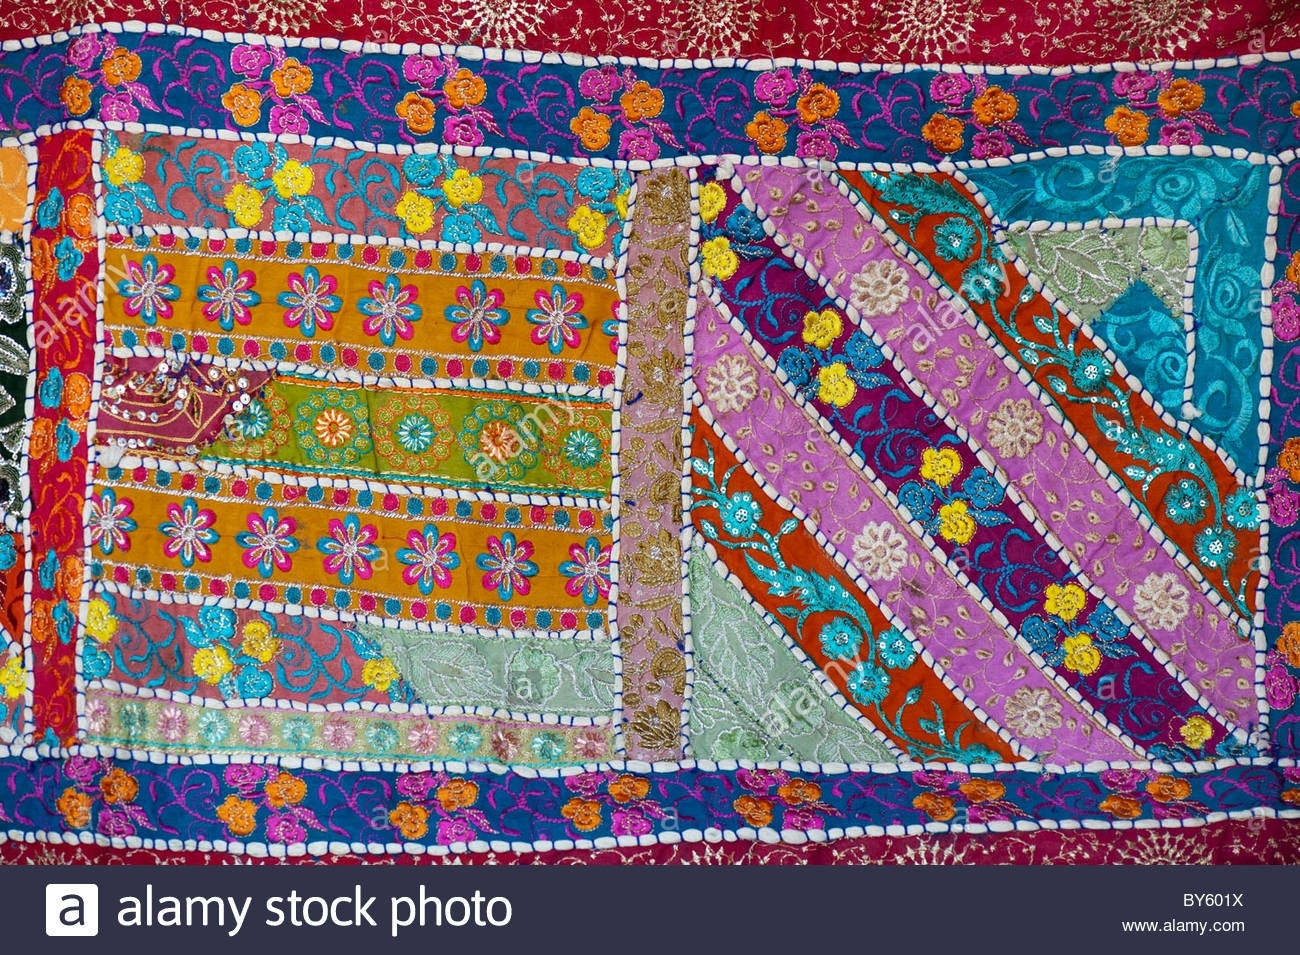 Multicoloured Indian Fabric Wall Hanging. Indian Craftwork Stock Throughout 2017 Indian Fabric Wall Art (Gallery 8 of 15)